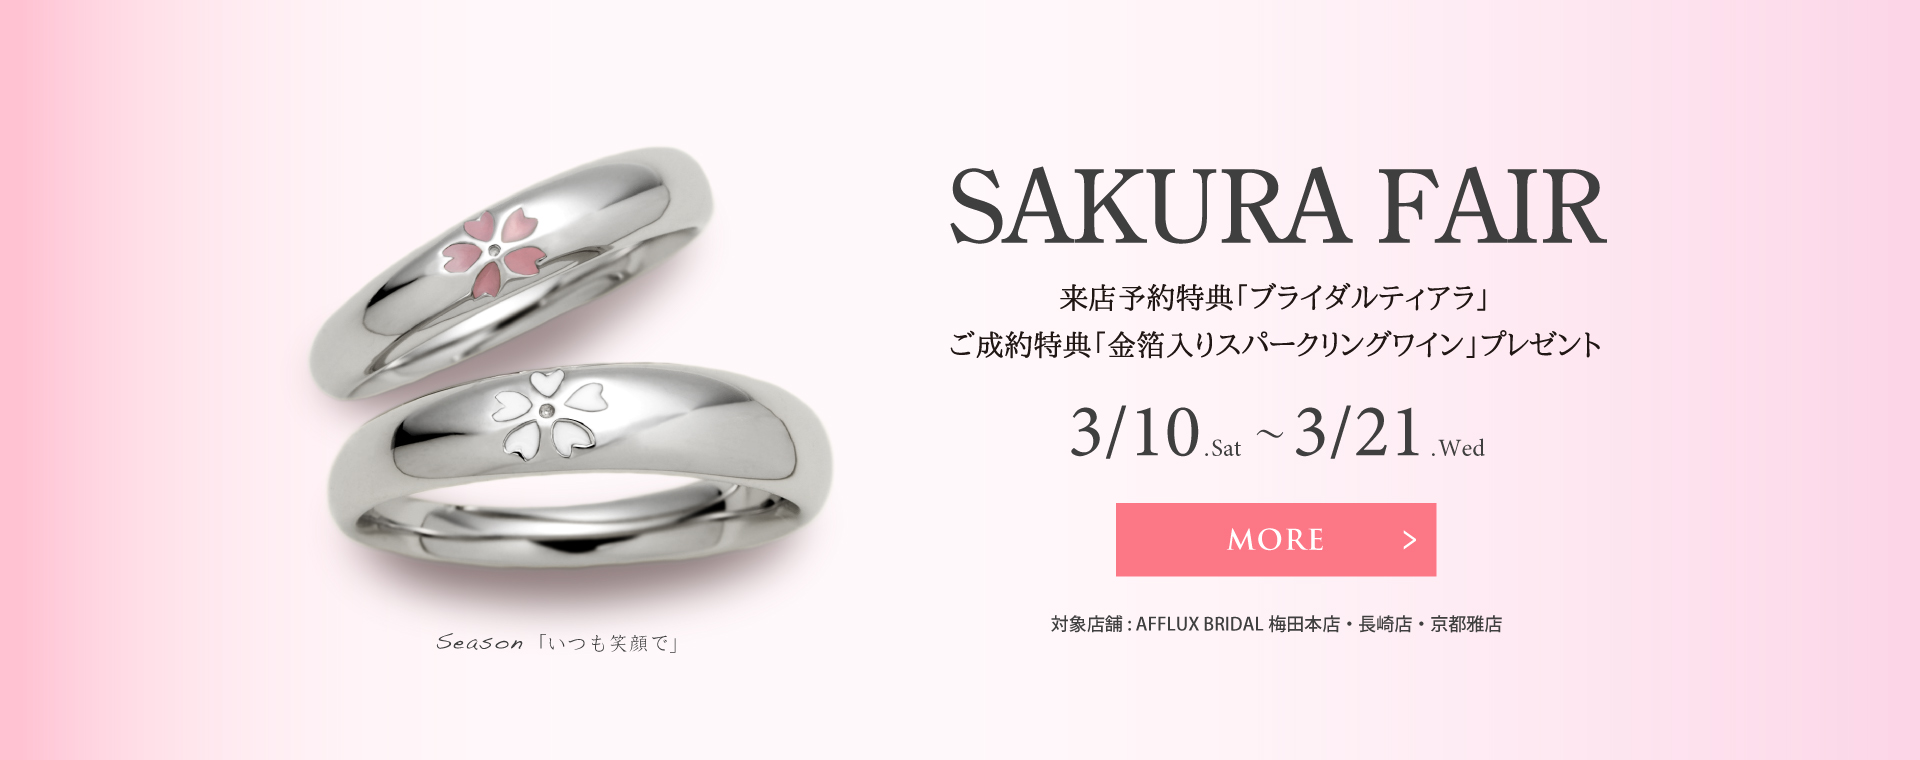 SAKURA FAIR 3/1.Sat~21.Wed